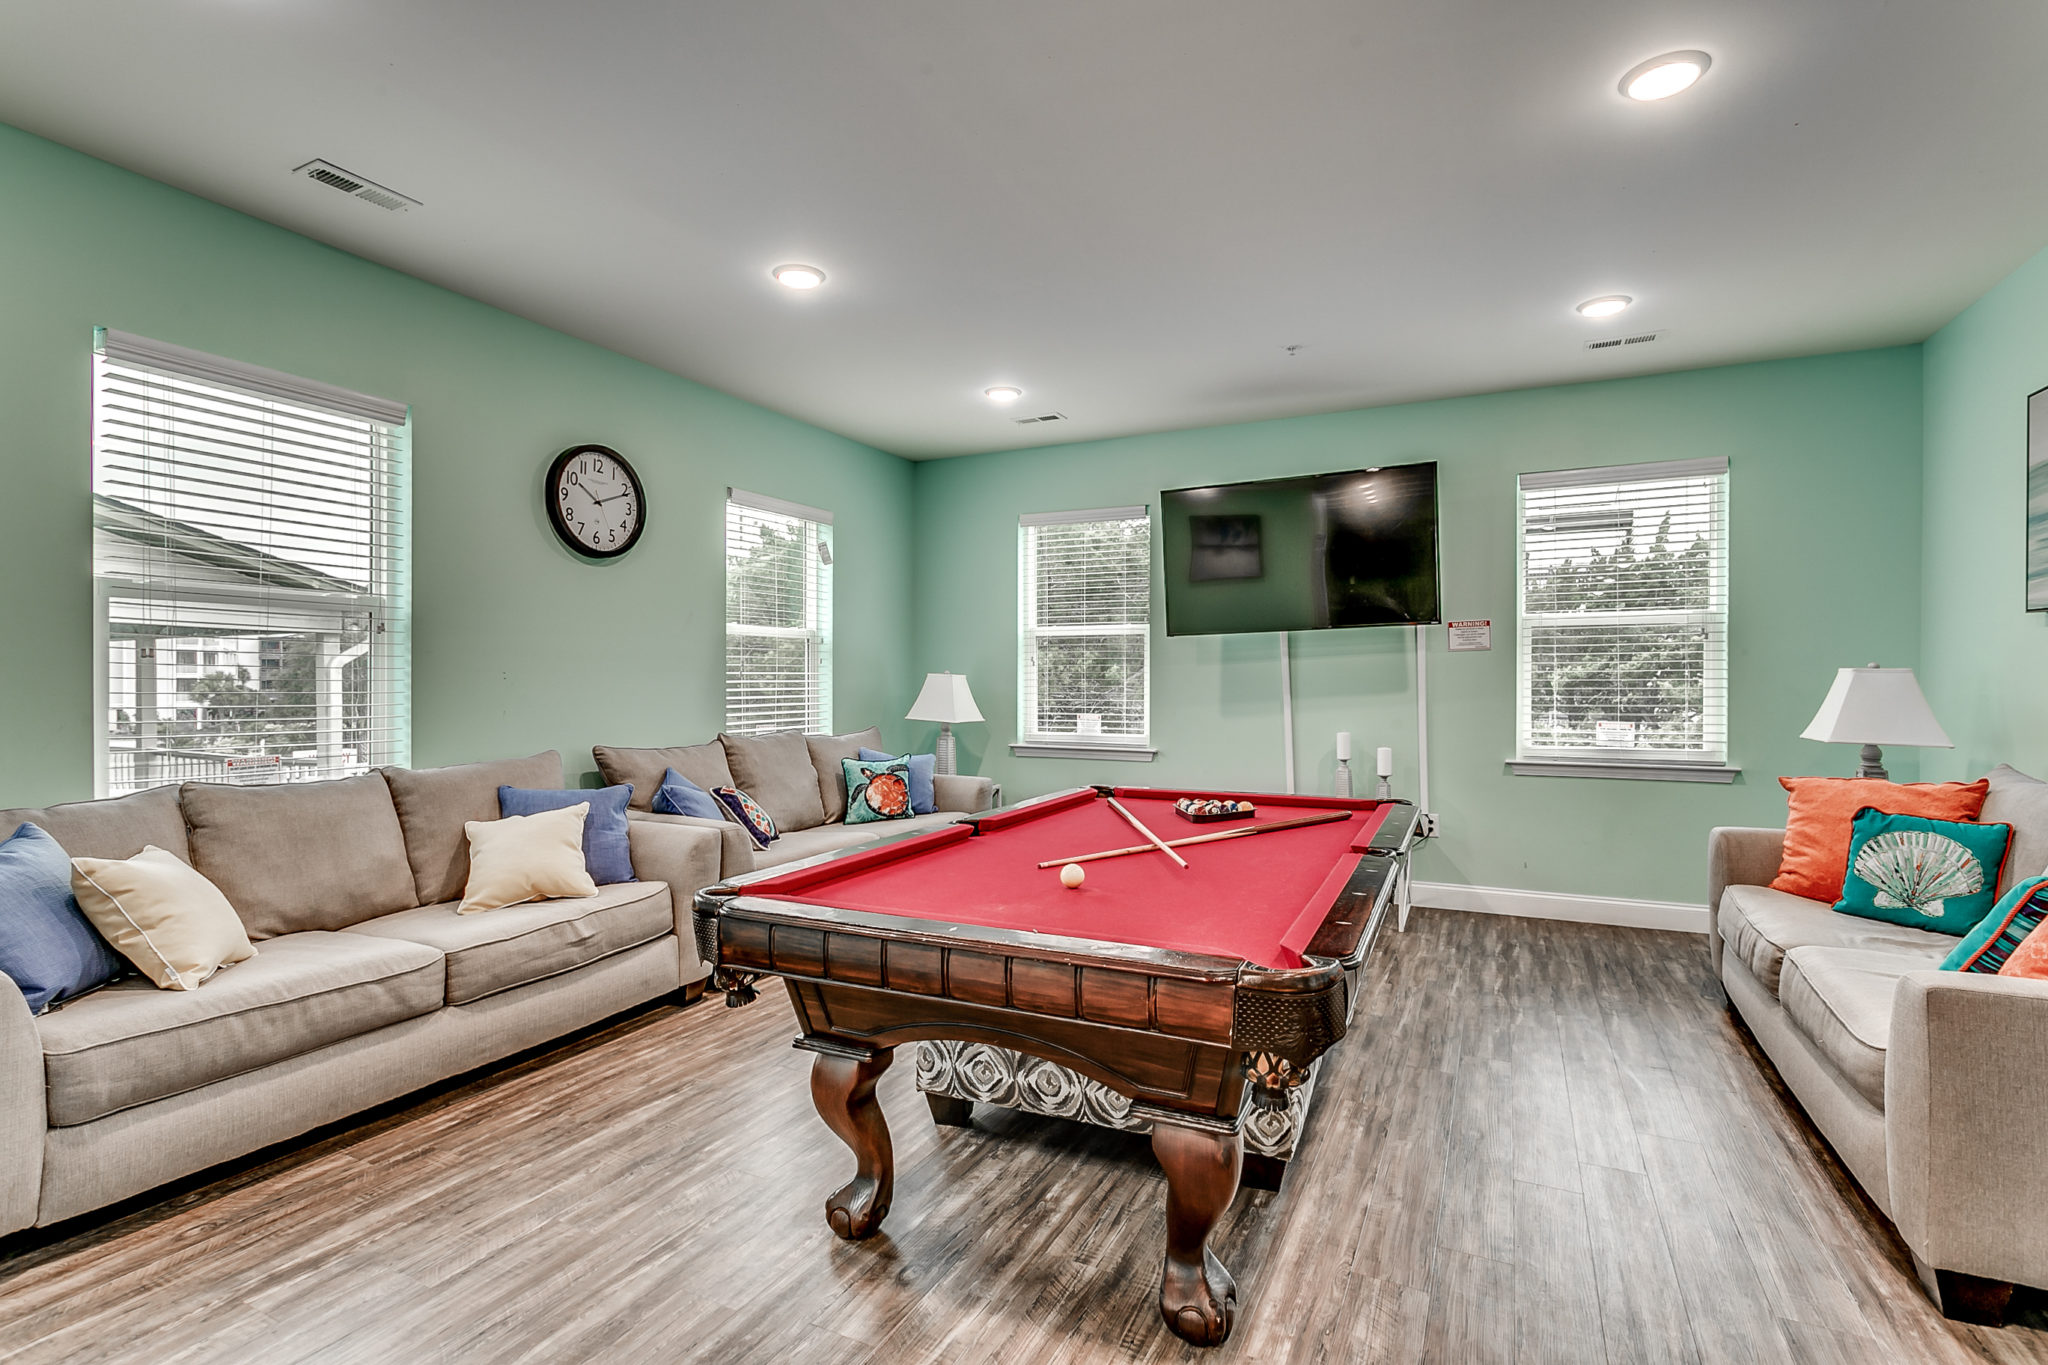 204 54th Ave - Unit B game room.